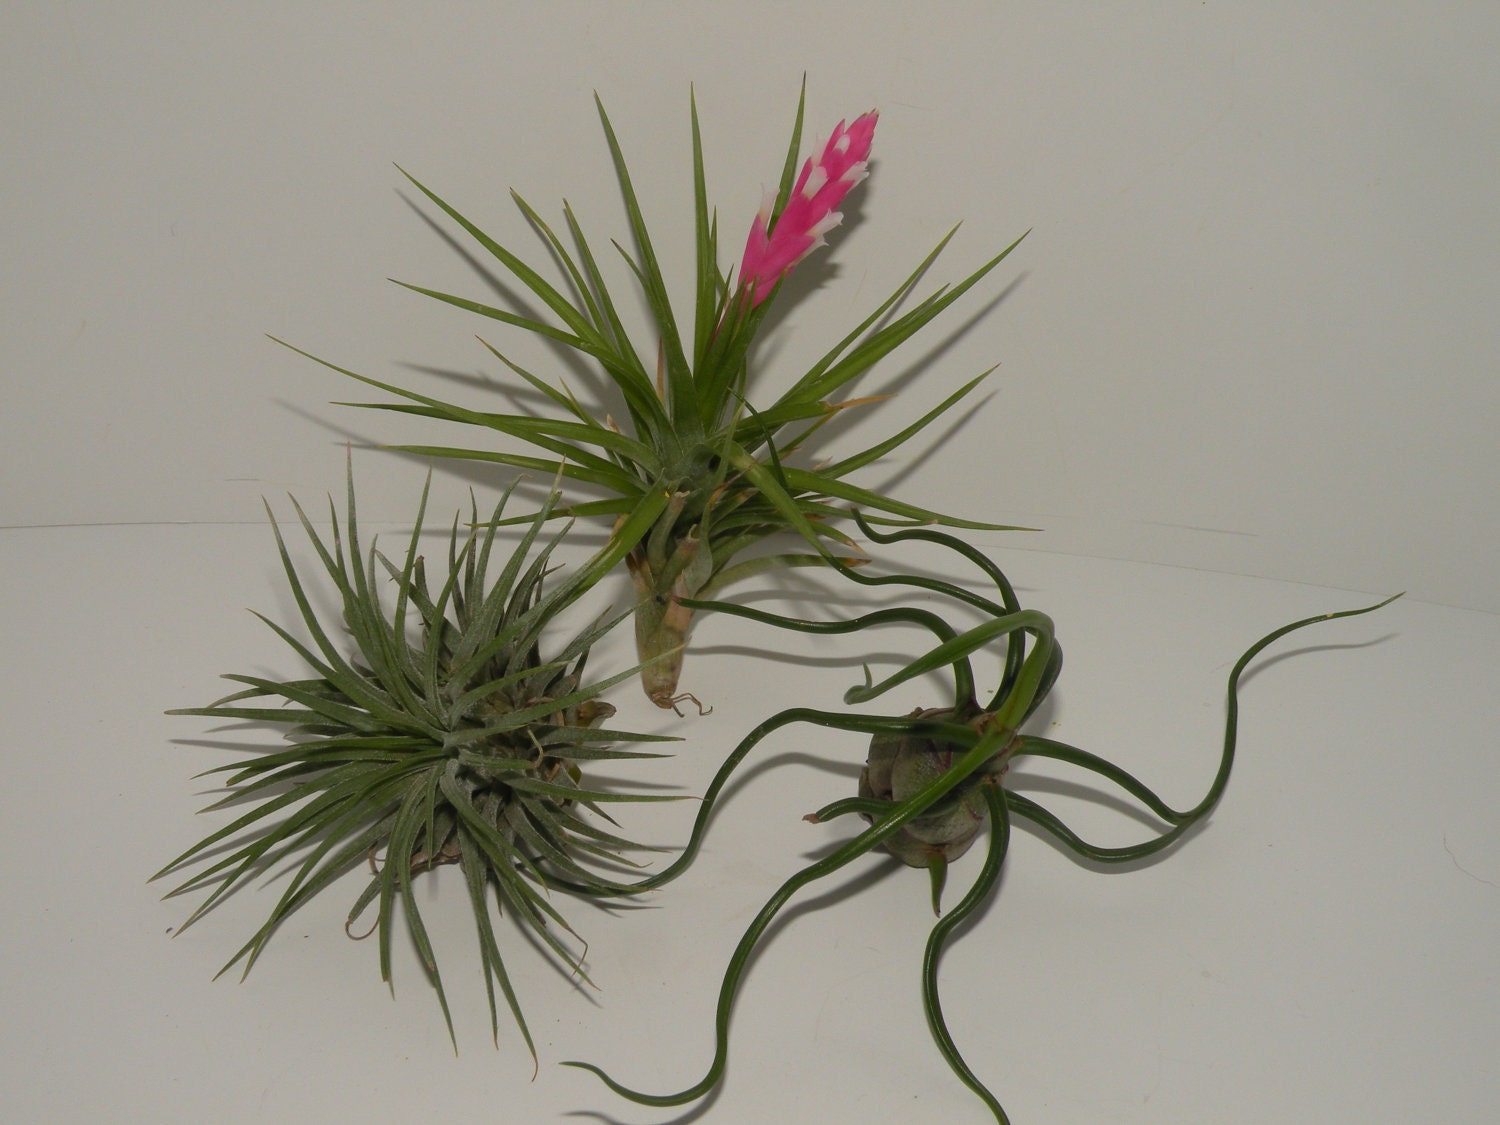 air plants for sale group of 3 healthy plants by